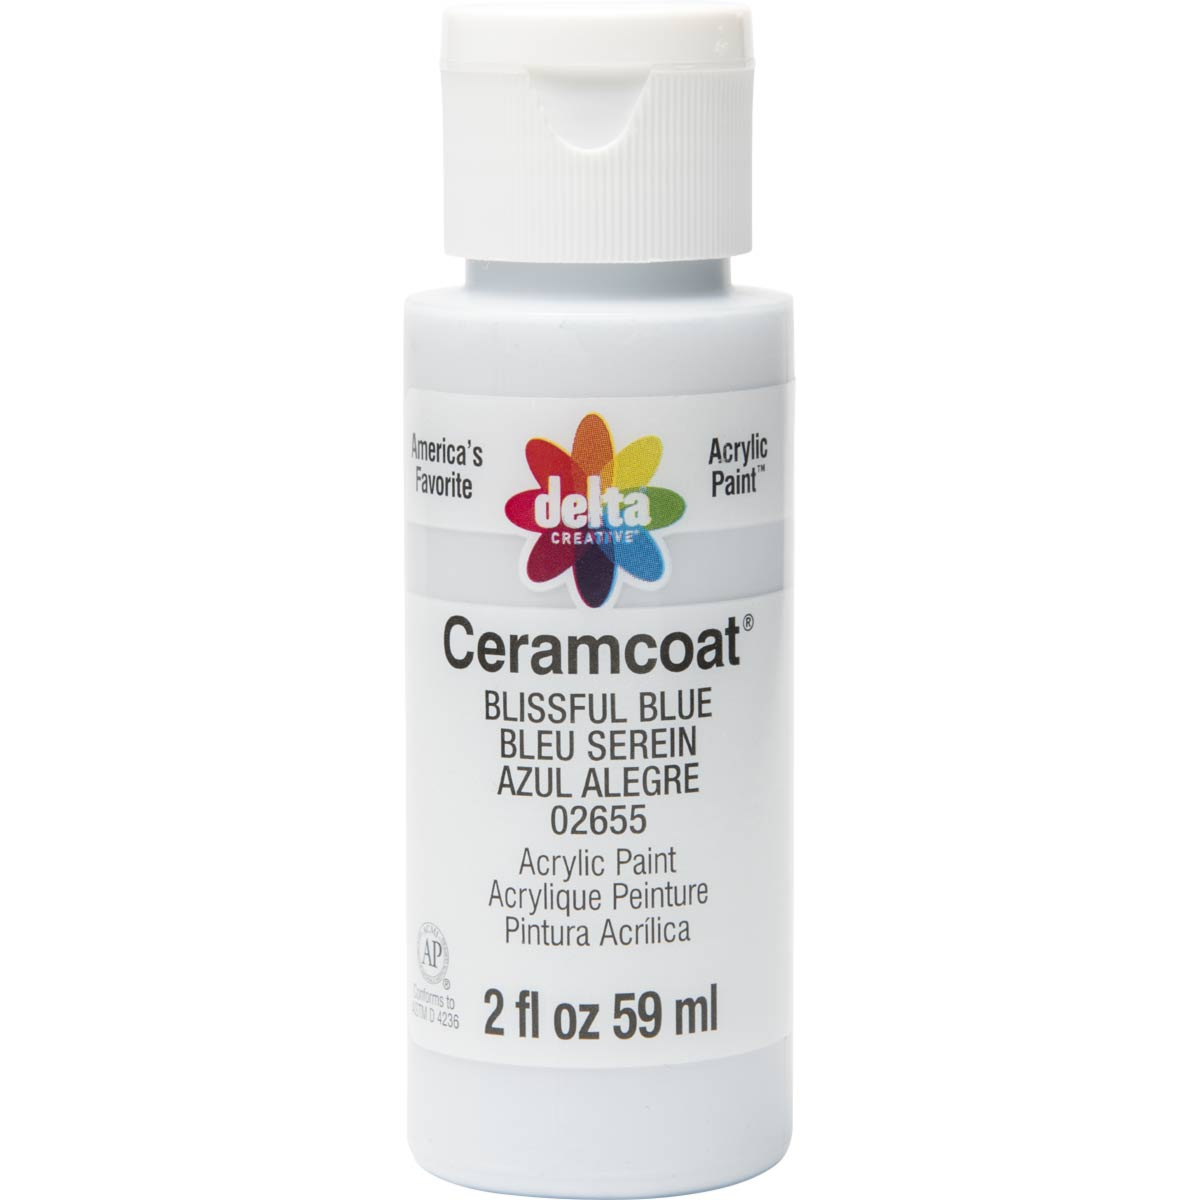 Delta Ceramcoat ® Acrylic Paint - Blissful Blue, 2 oz. - 026550202W